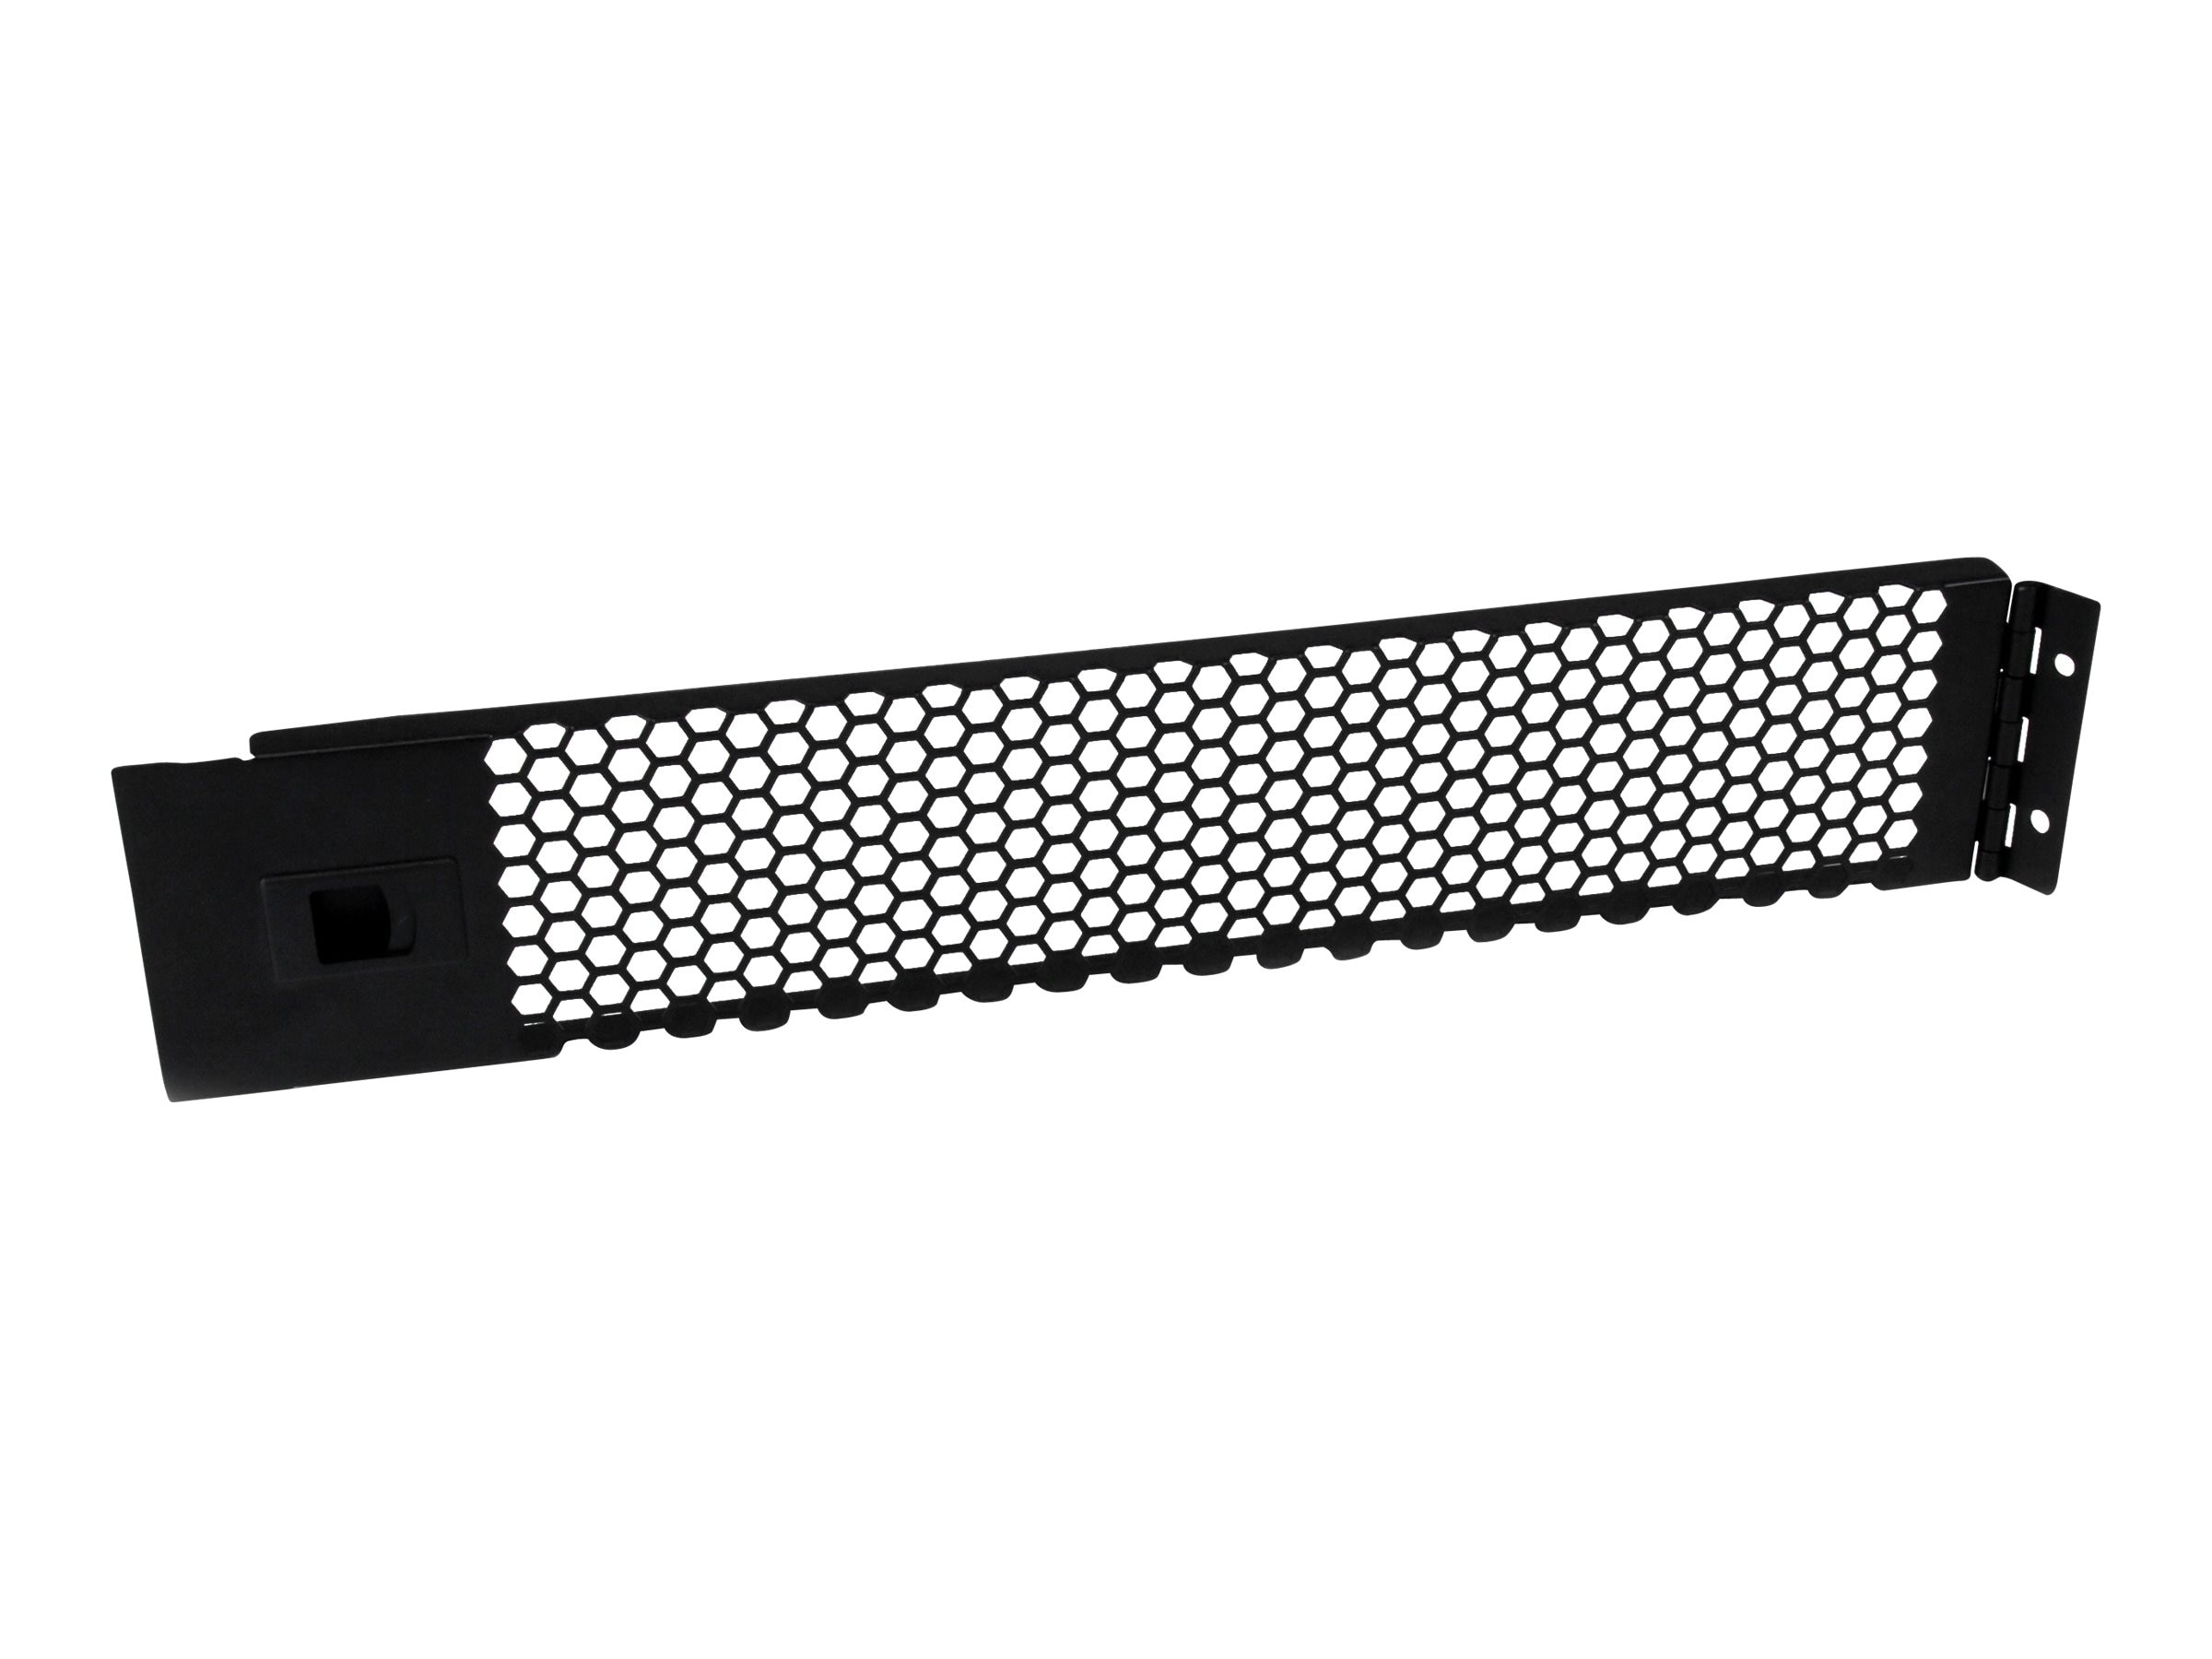 StarTech.com Hinged & Vented Blank Rack Panel, 2U Black